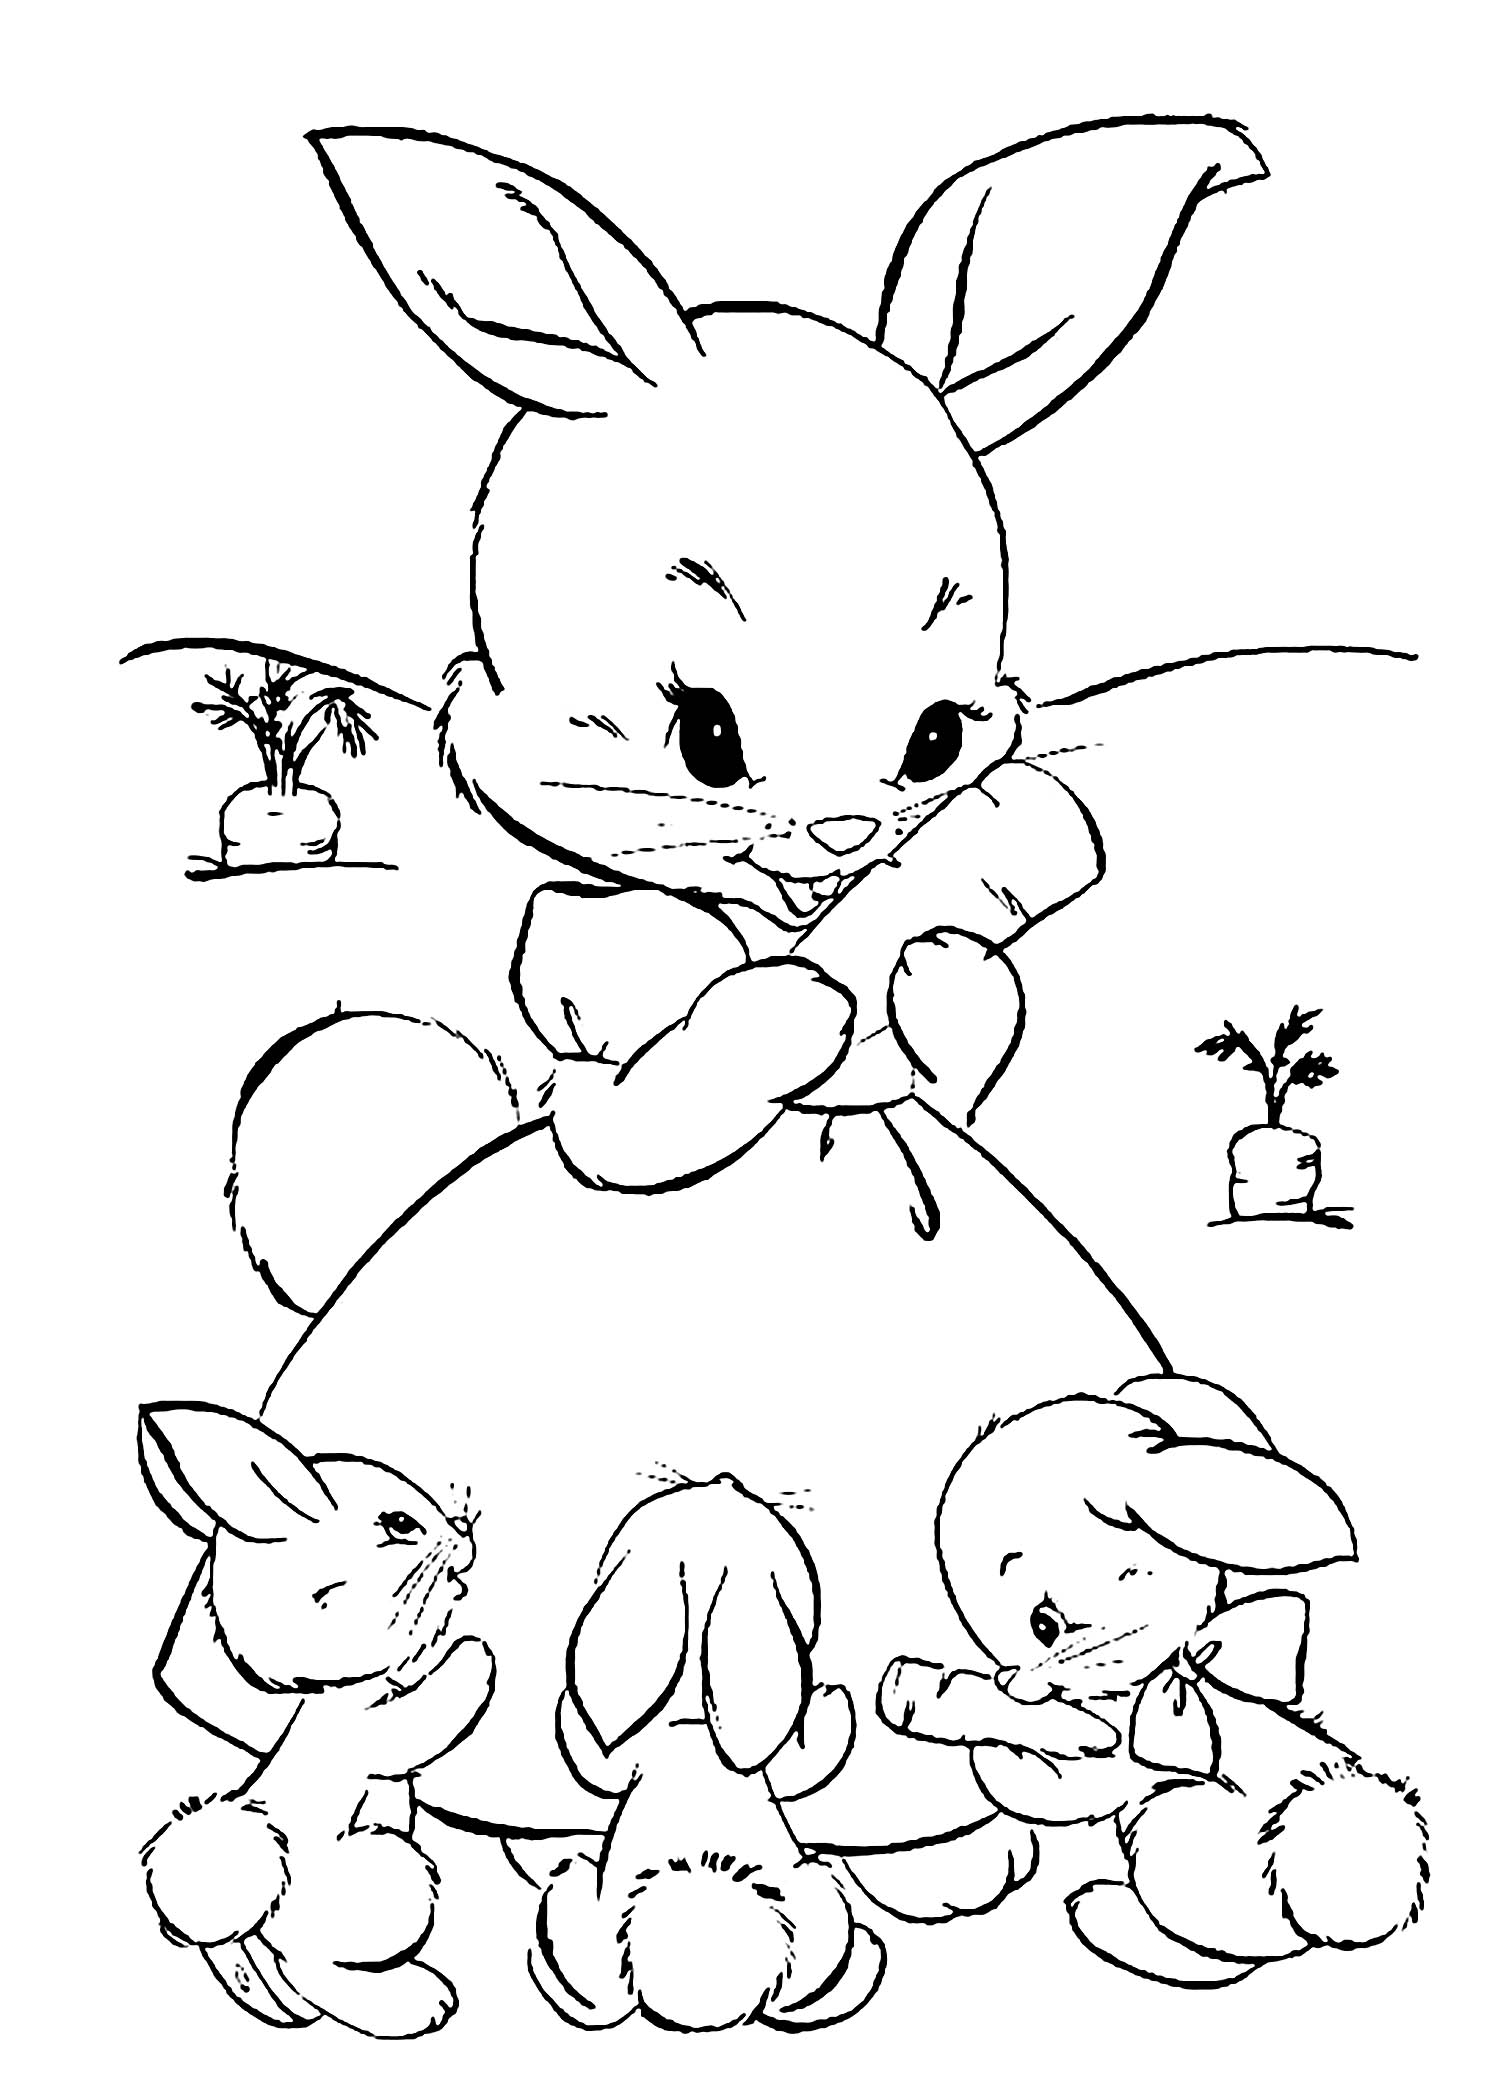 Beautiful Rabbit coloring page to print and color